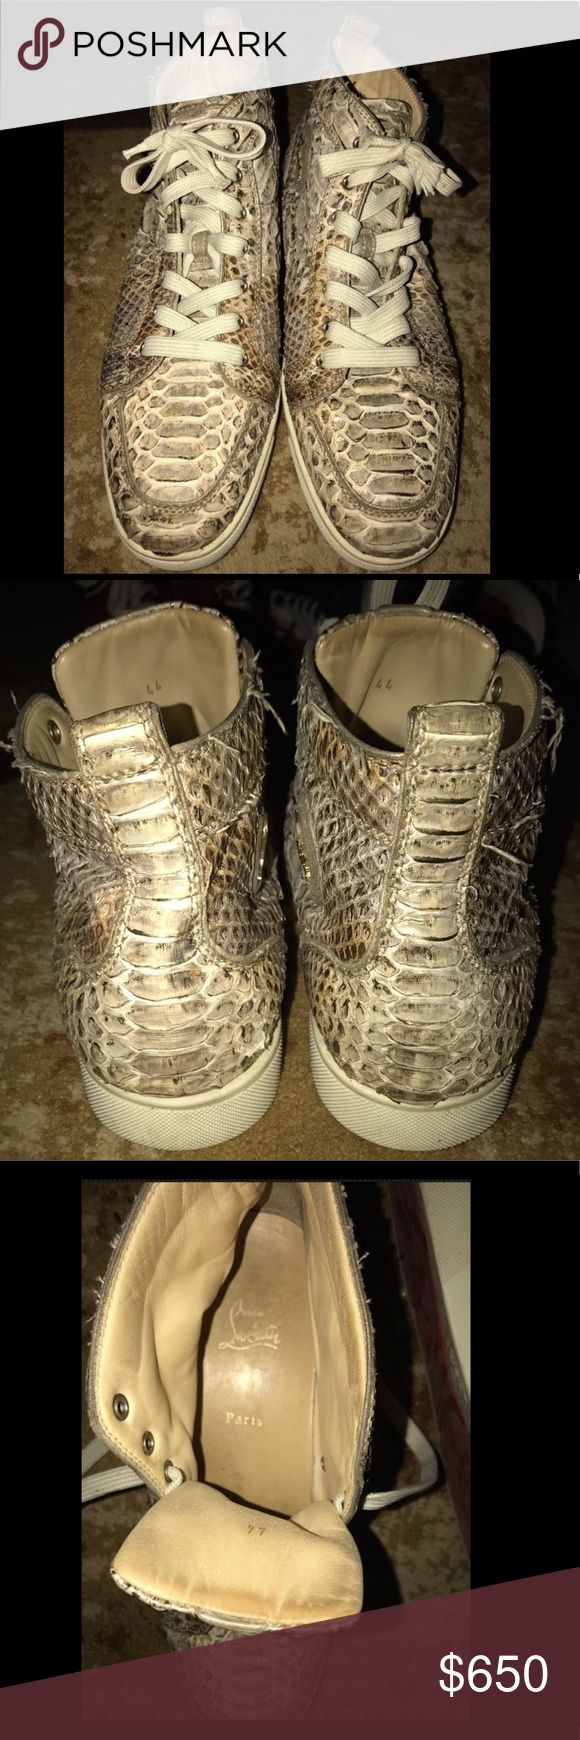 Christian Louboutin Rantus Orlato Flat Python Men's Python Christian Louboutin Rantus Orlato high-top sneakers with round toes, creme contrast rubber soles and lace-tie closures at uppers. Unfortunately , no dust bag or box. Lace ends stripped. Christian Louboutin Shoes Sneakers